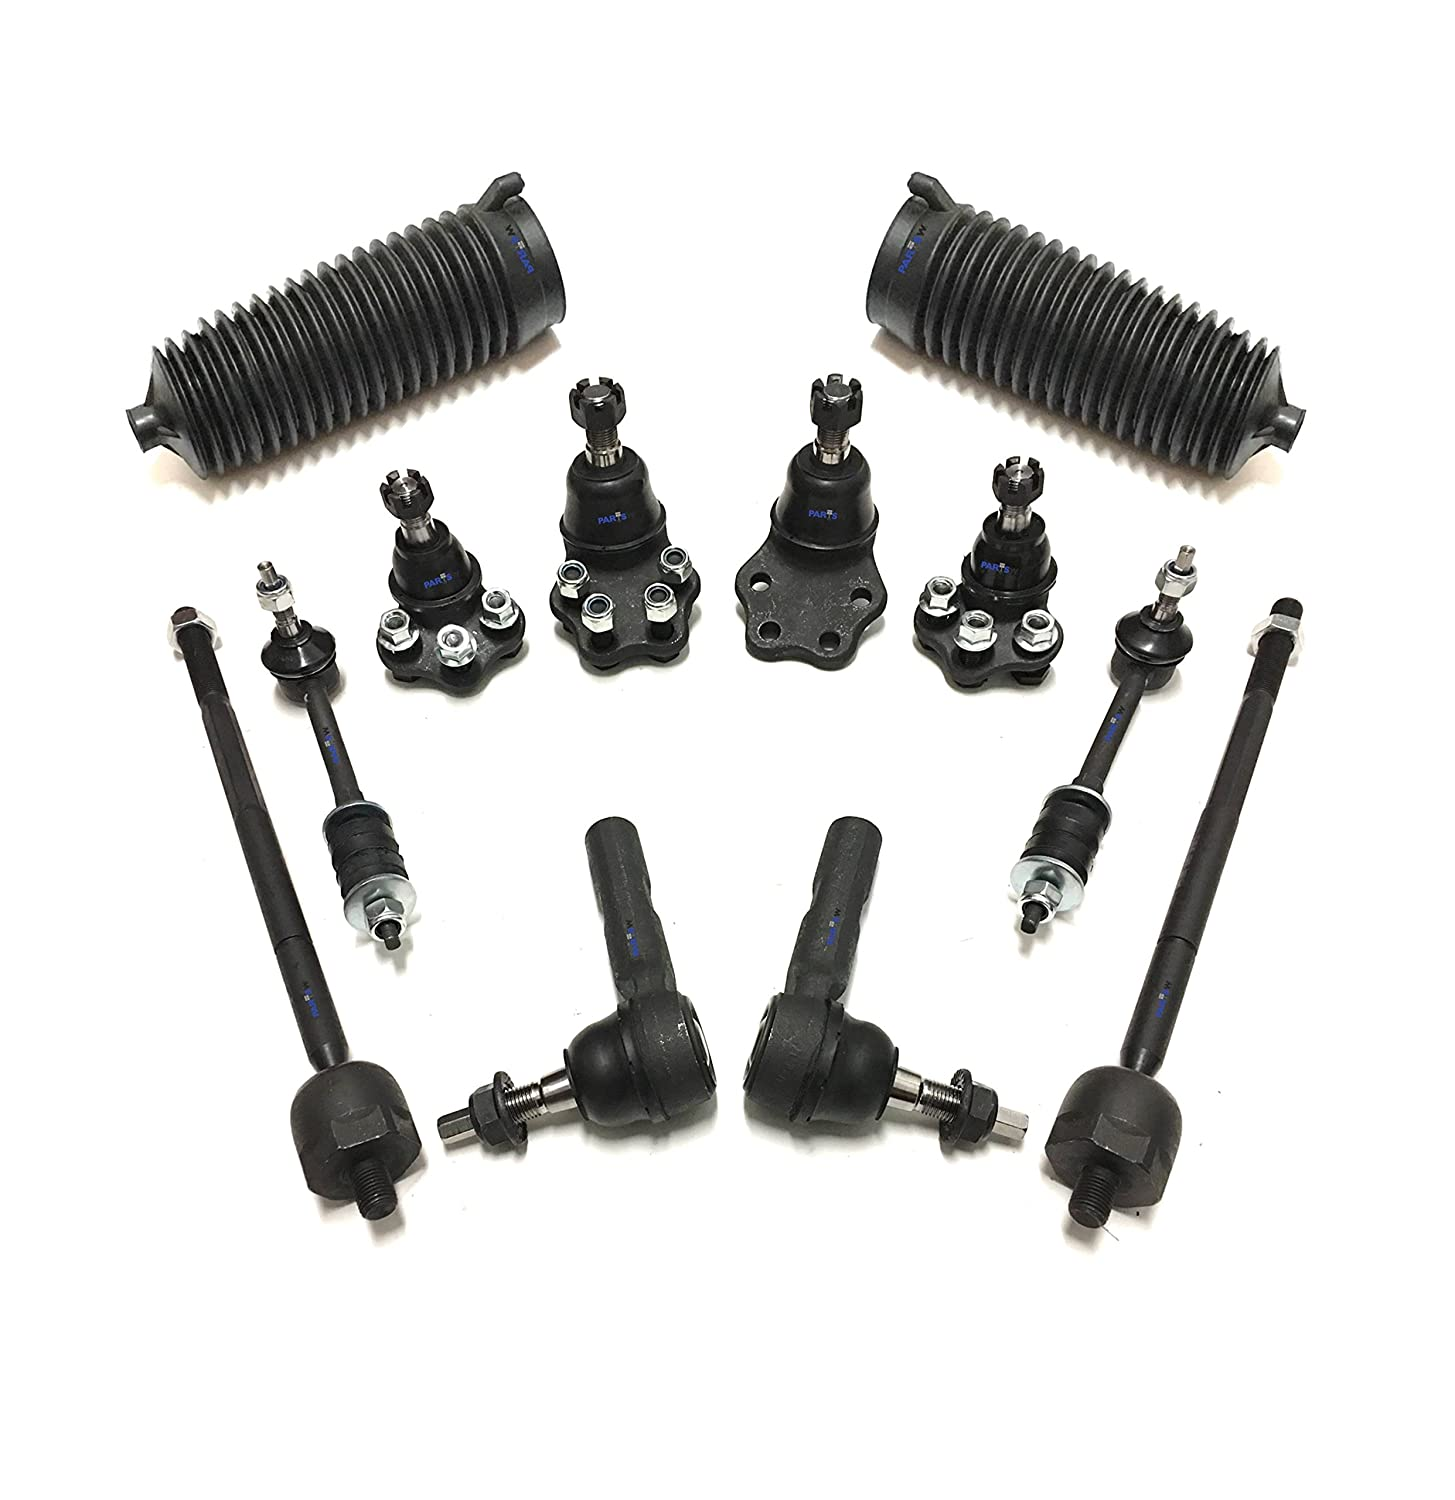 PartsW 12 Pc Front Suspension Kit for Dodge Dakota 2000-2004 & Durango 2000-2003 RWD Models Inner & Outer Tie Rod Ends, Gear Bellows, Sway Bar End Links, Upper & Lower Ball Joints